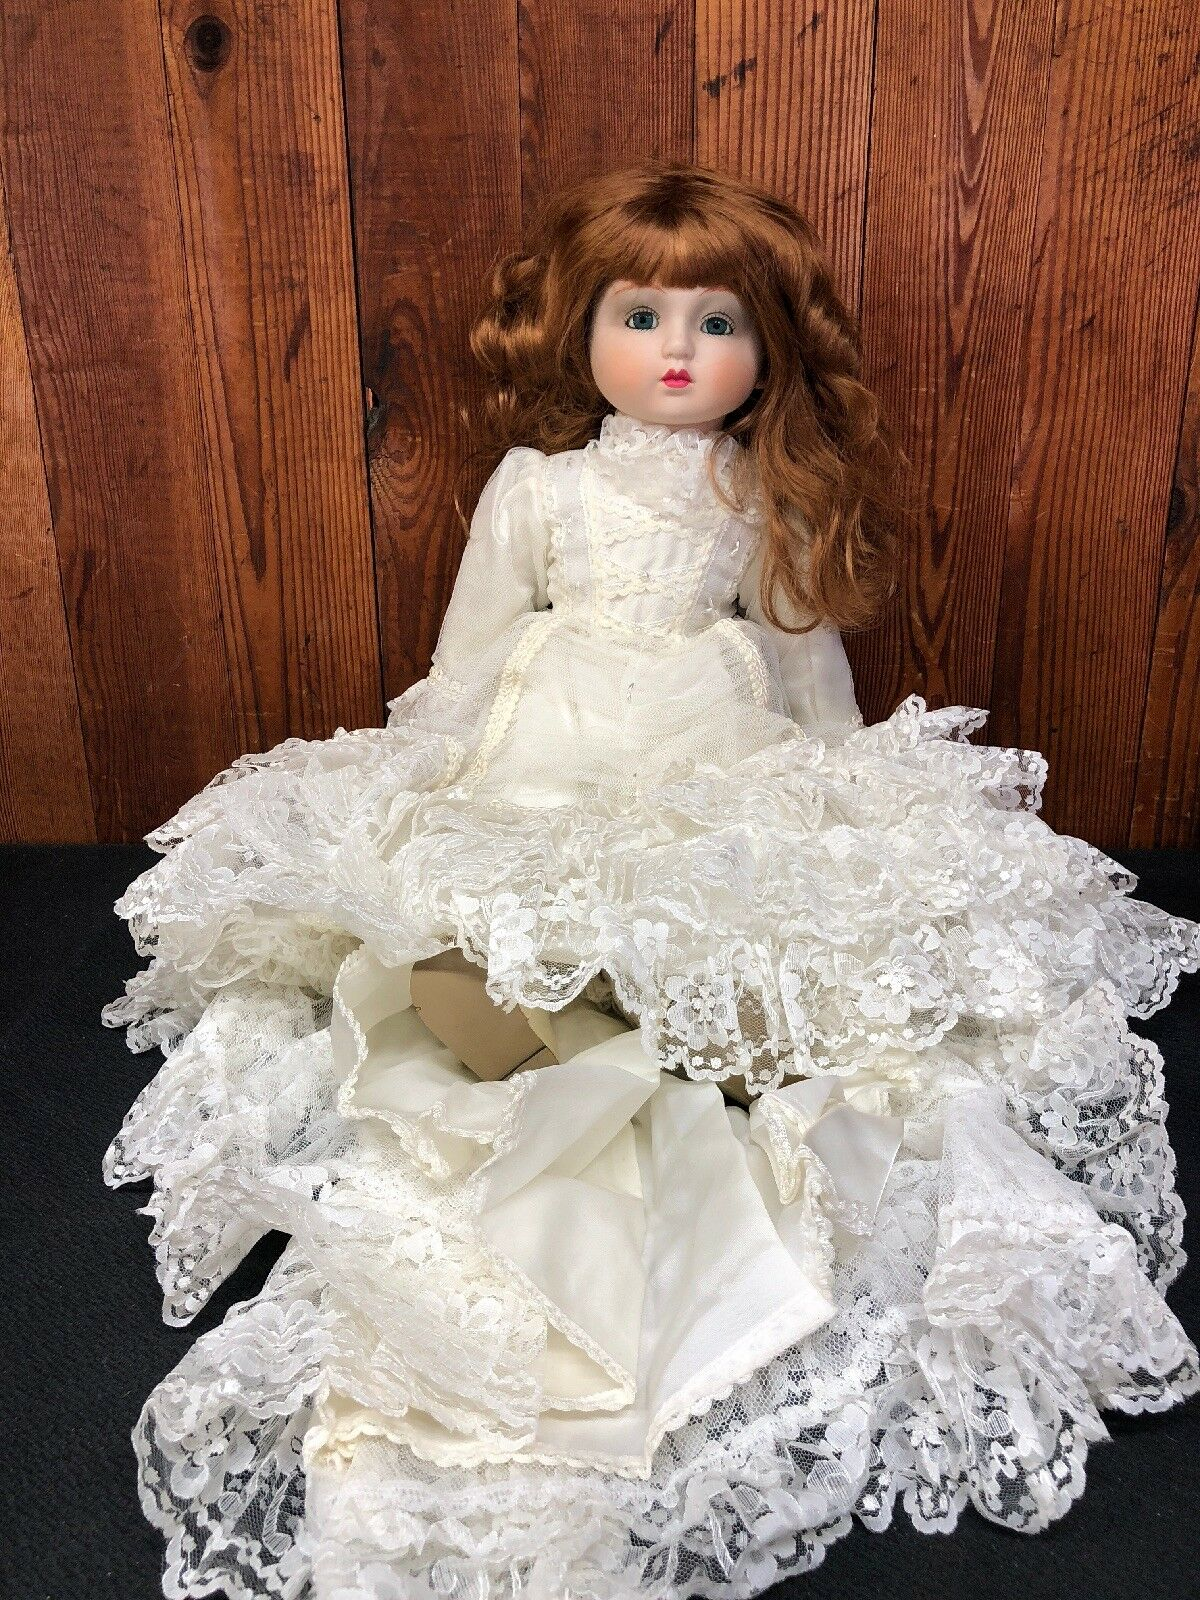 Porcelain Bride Doll- 2 Foot Doll- Bellissimo Train and Veil